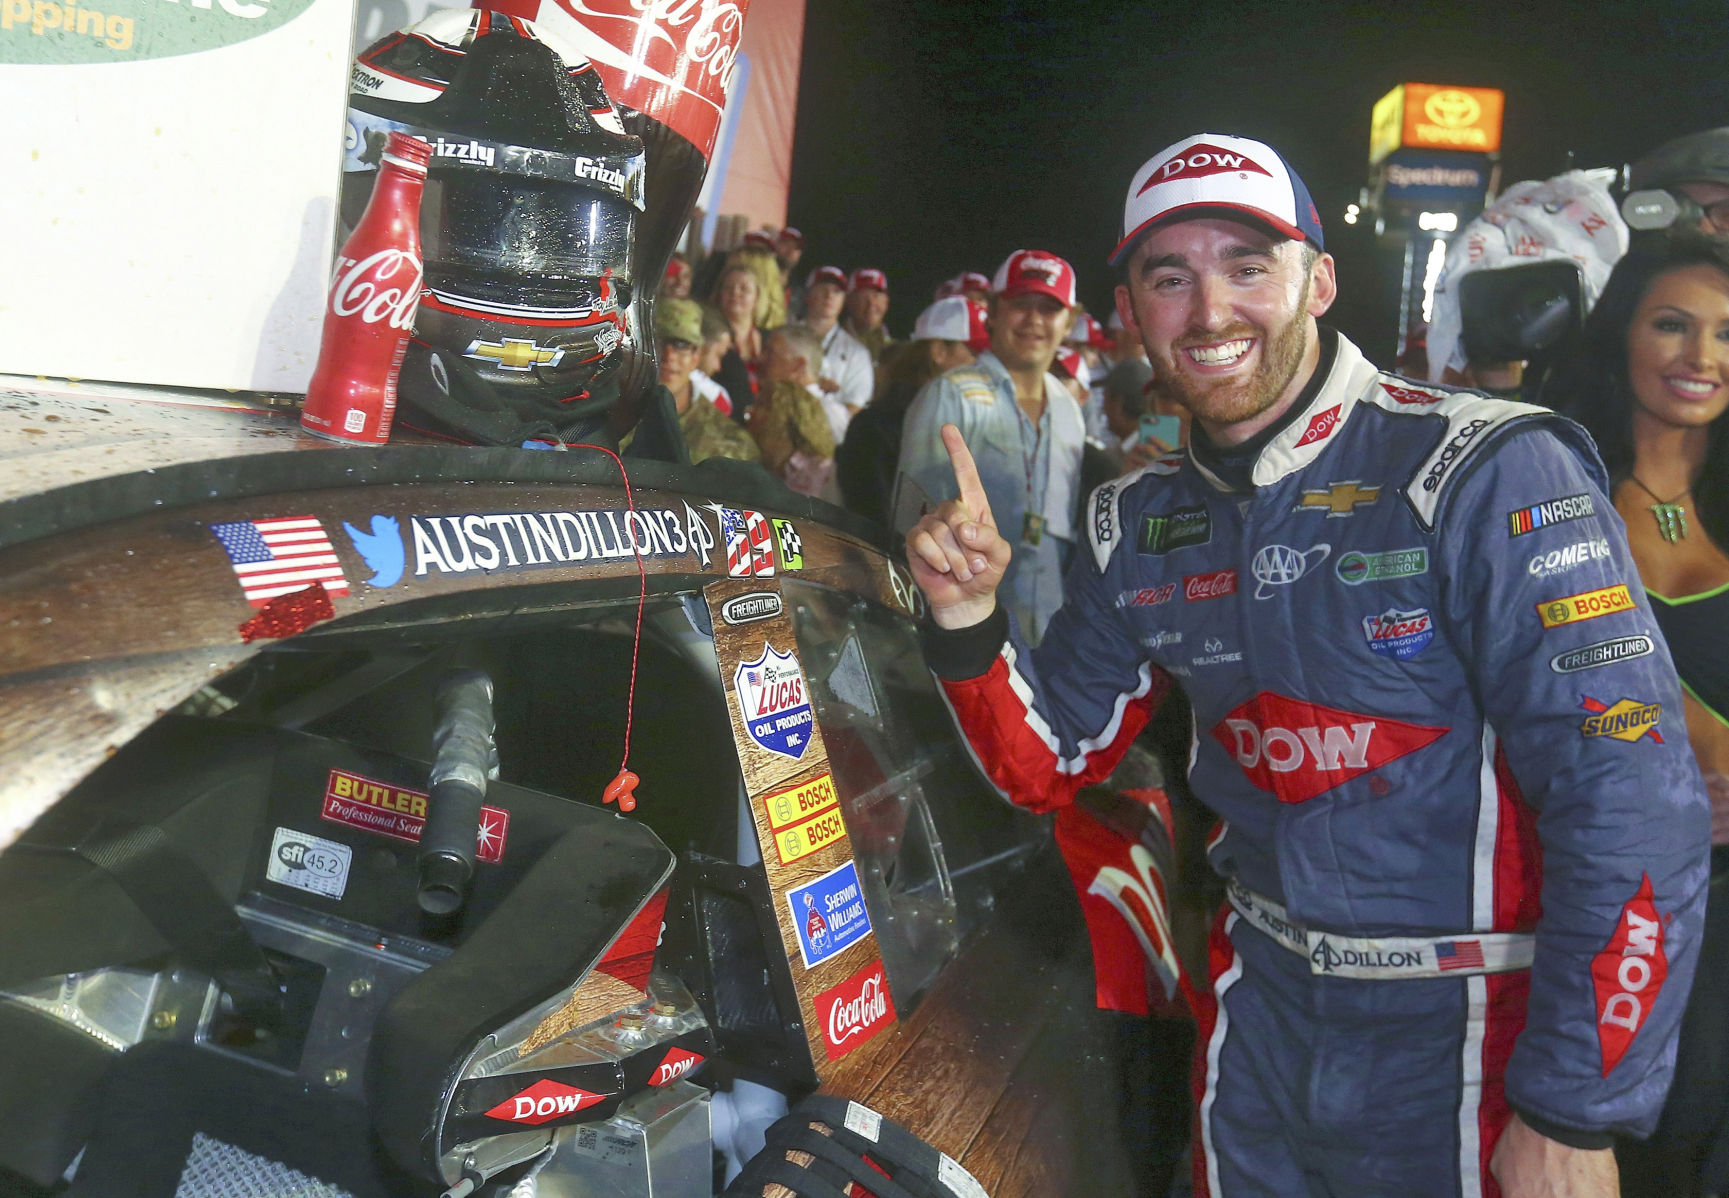 Austin Dillon wins first Cup race, takes 600-mile race